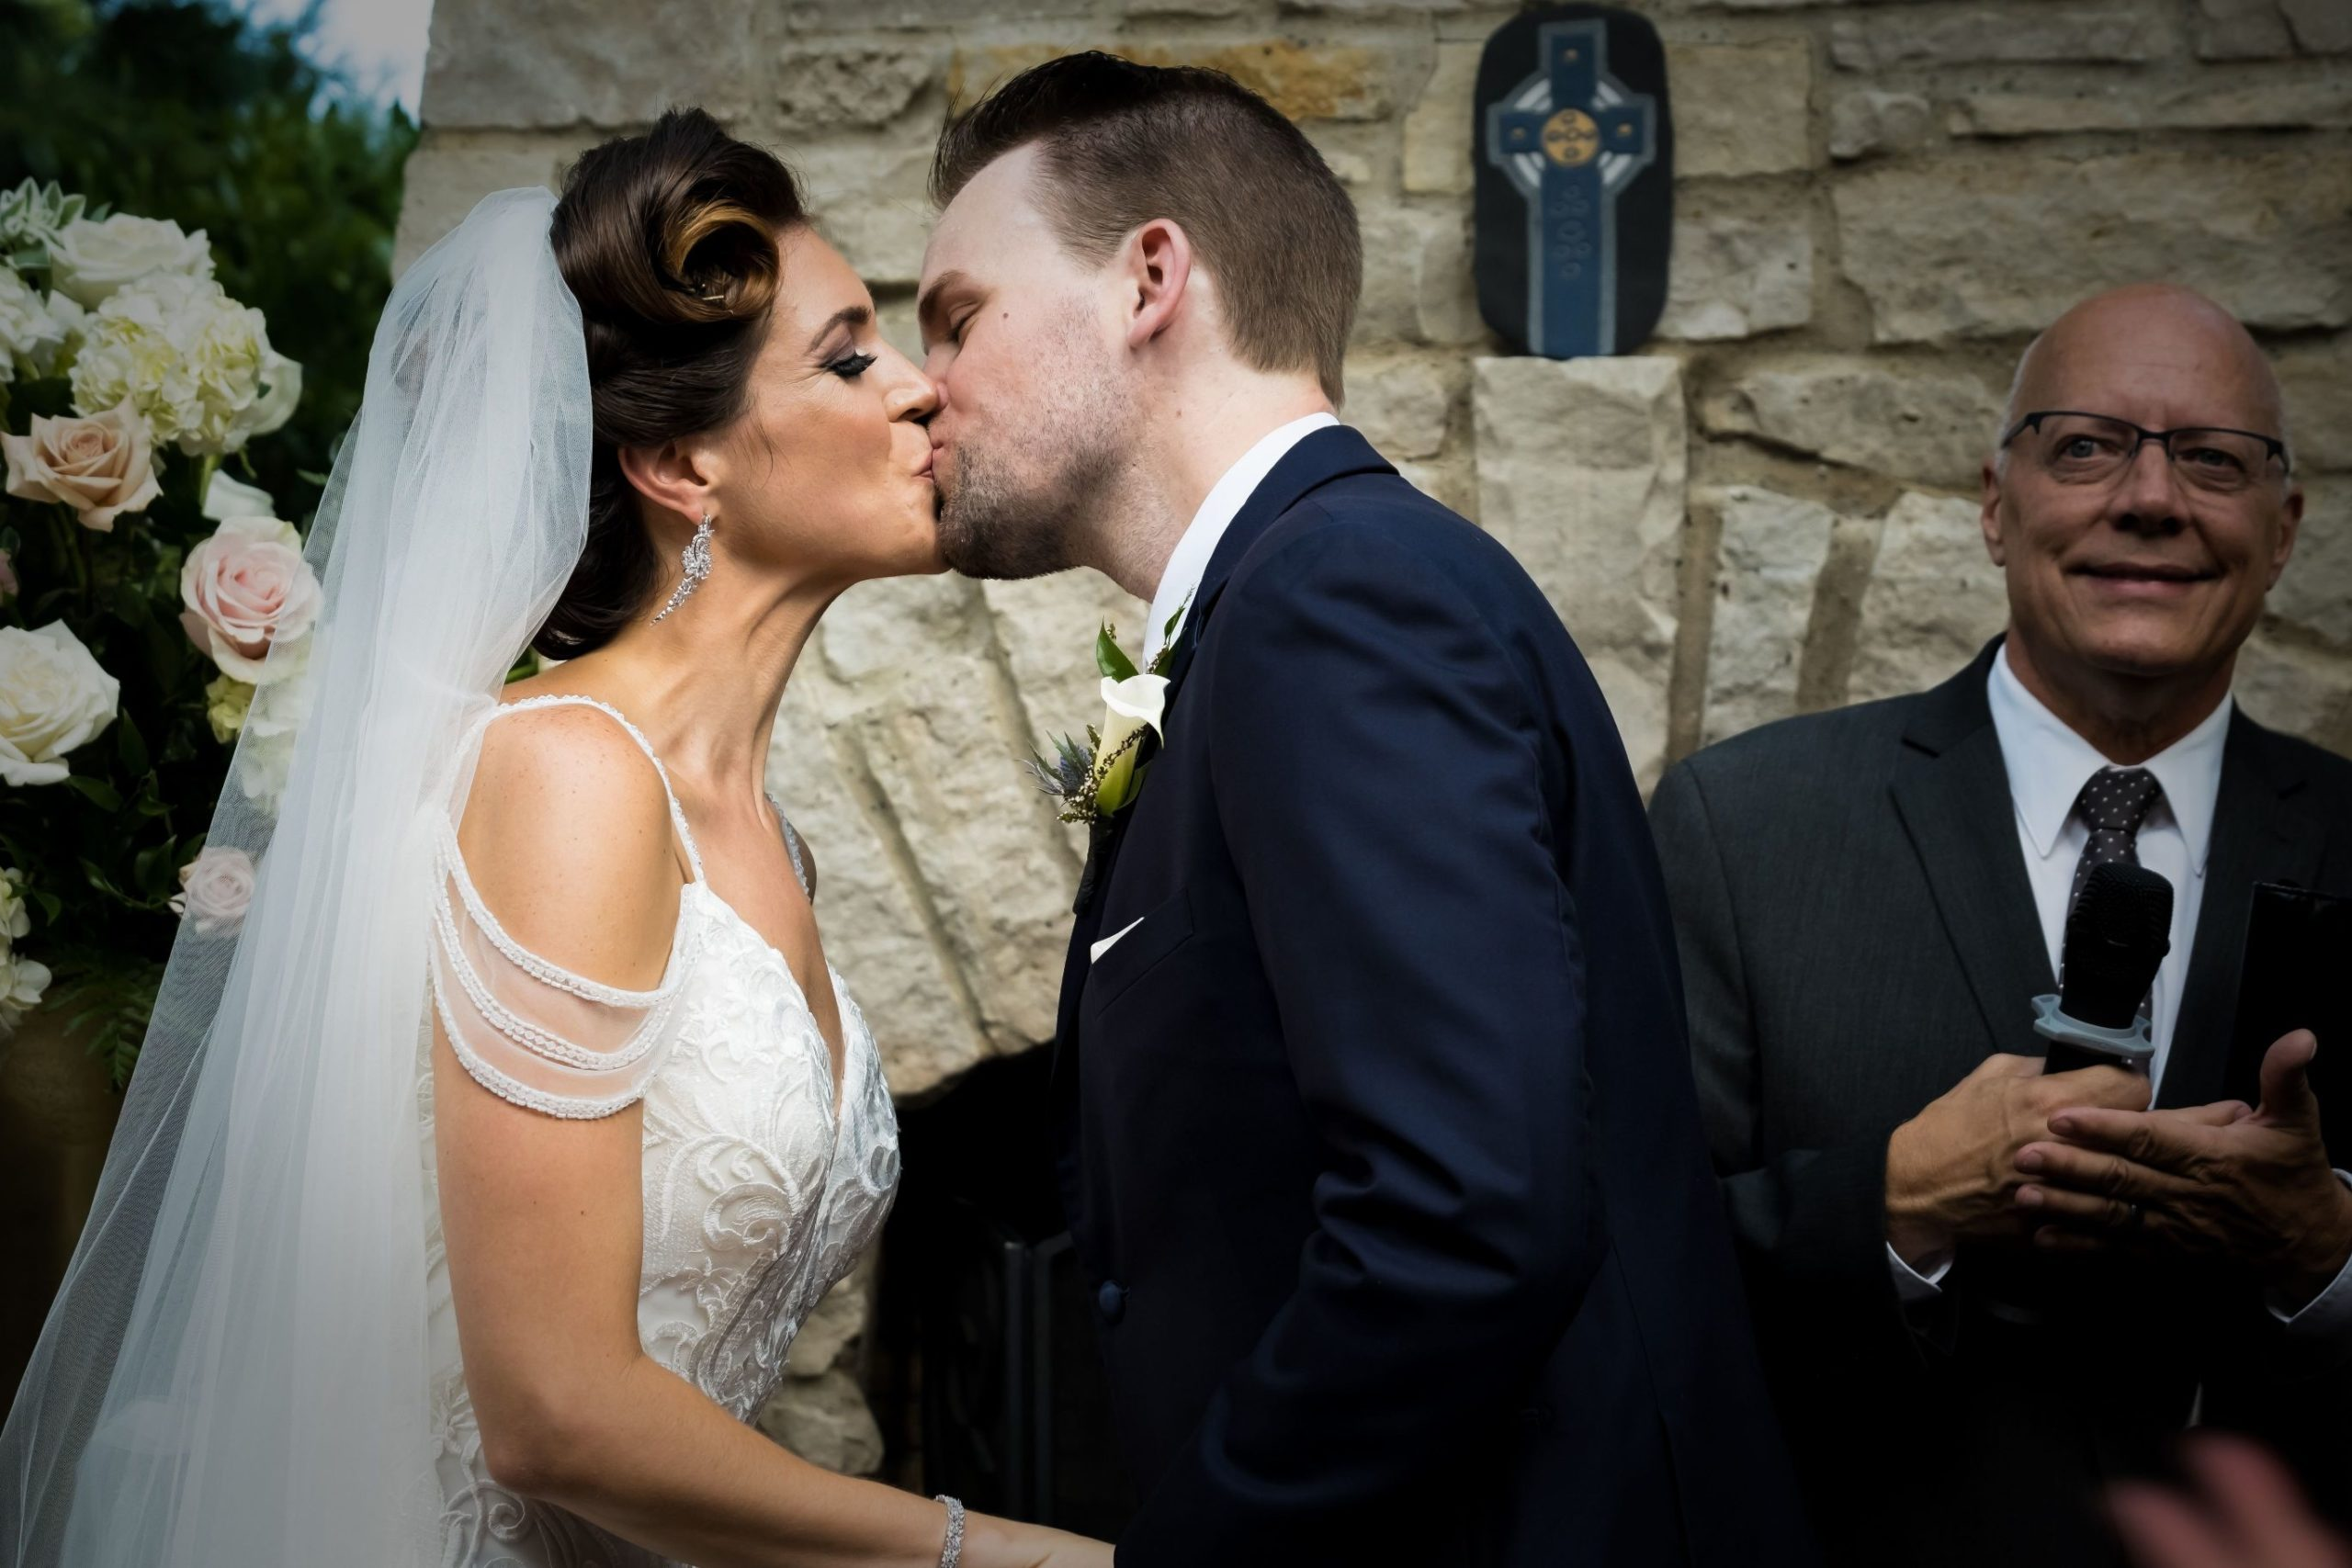 Ashley and Michael kissing at ceremony scaled 1